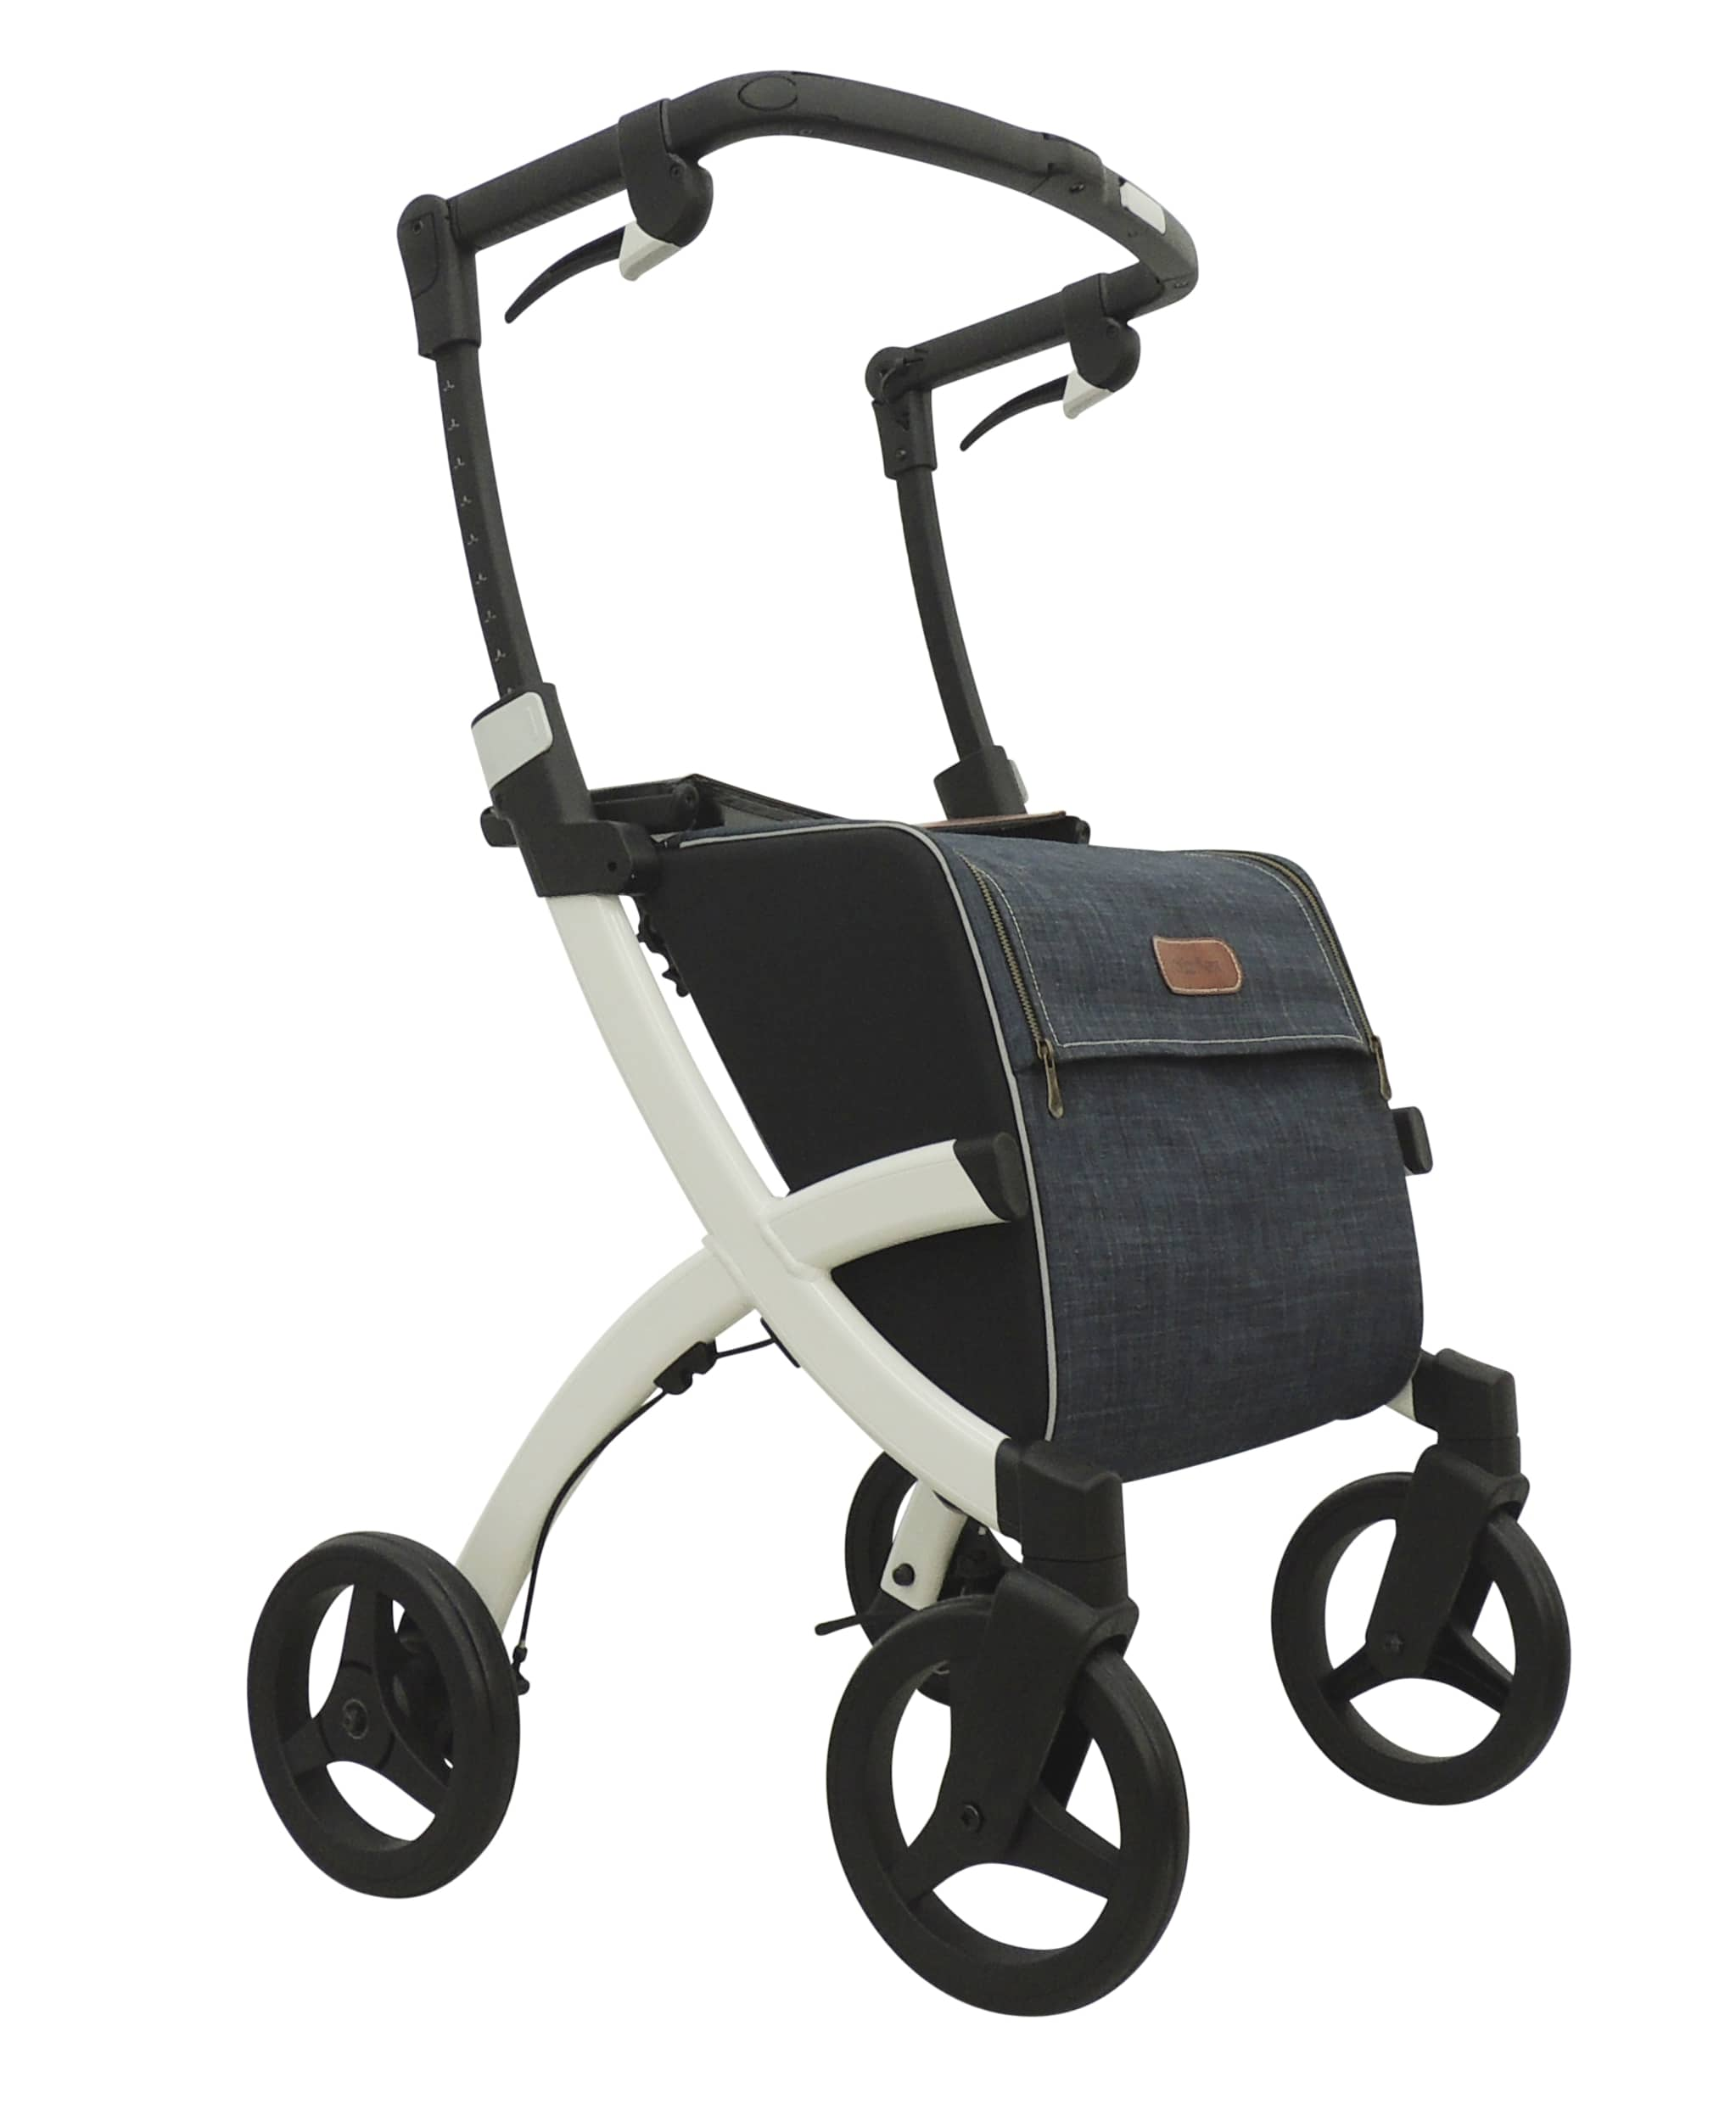 Rollz flex rollator - Denim grey bag and black seat